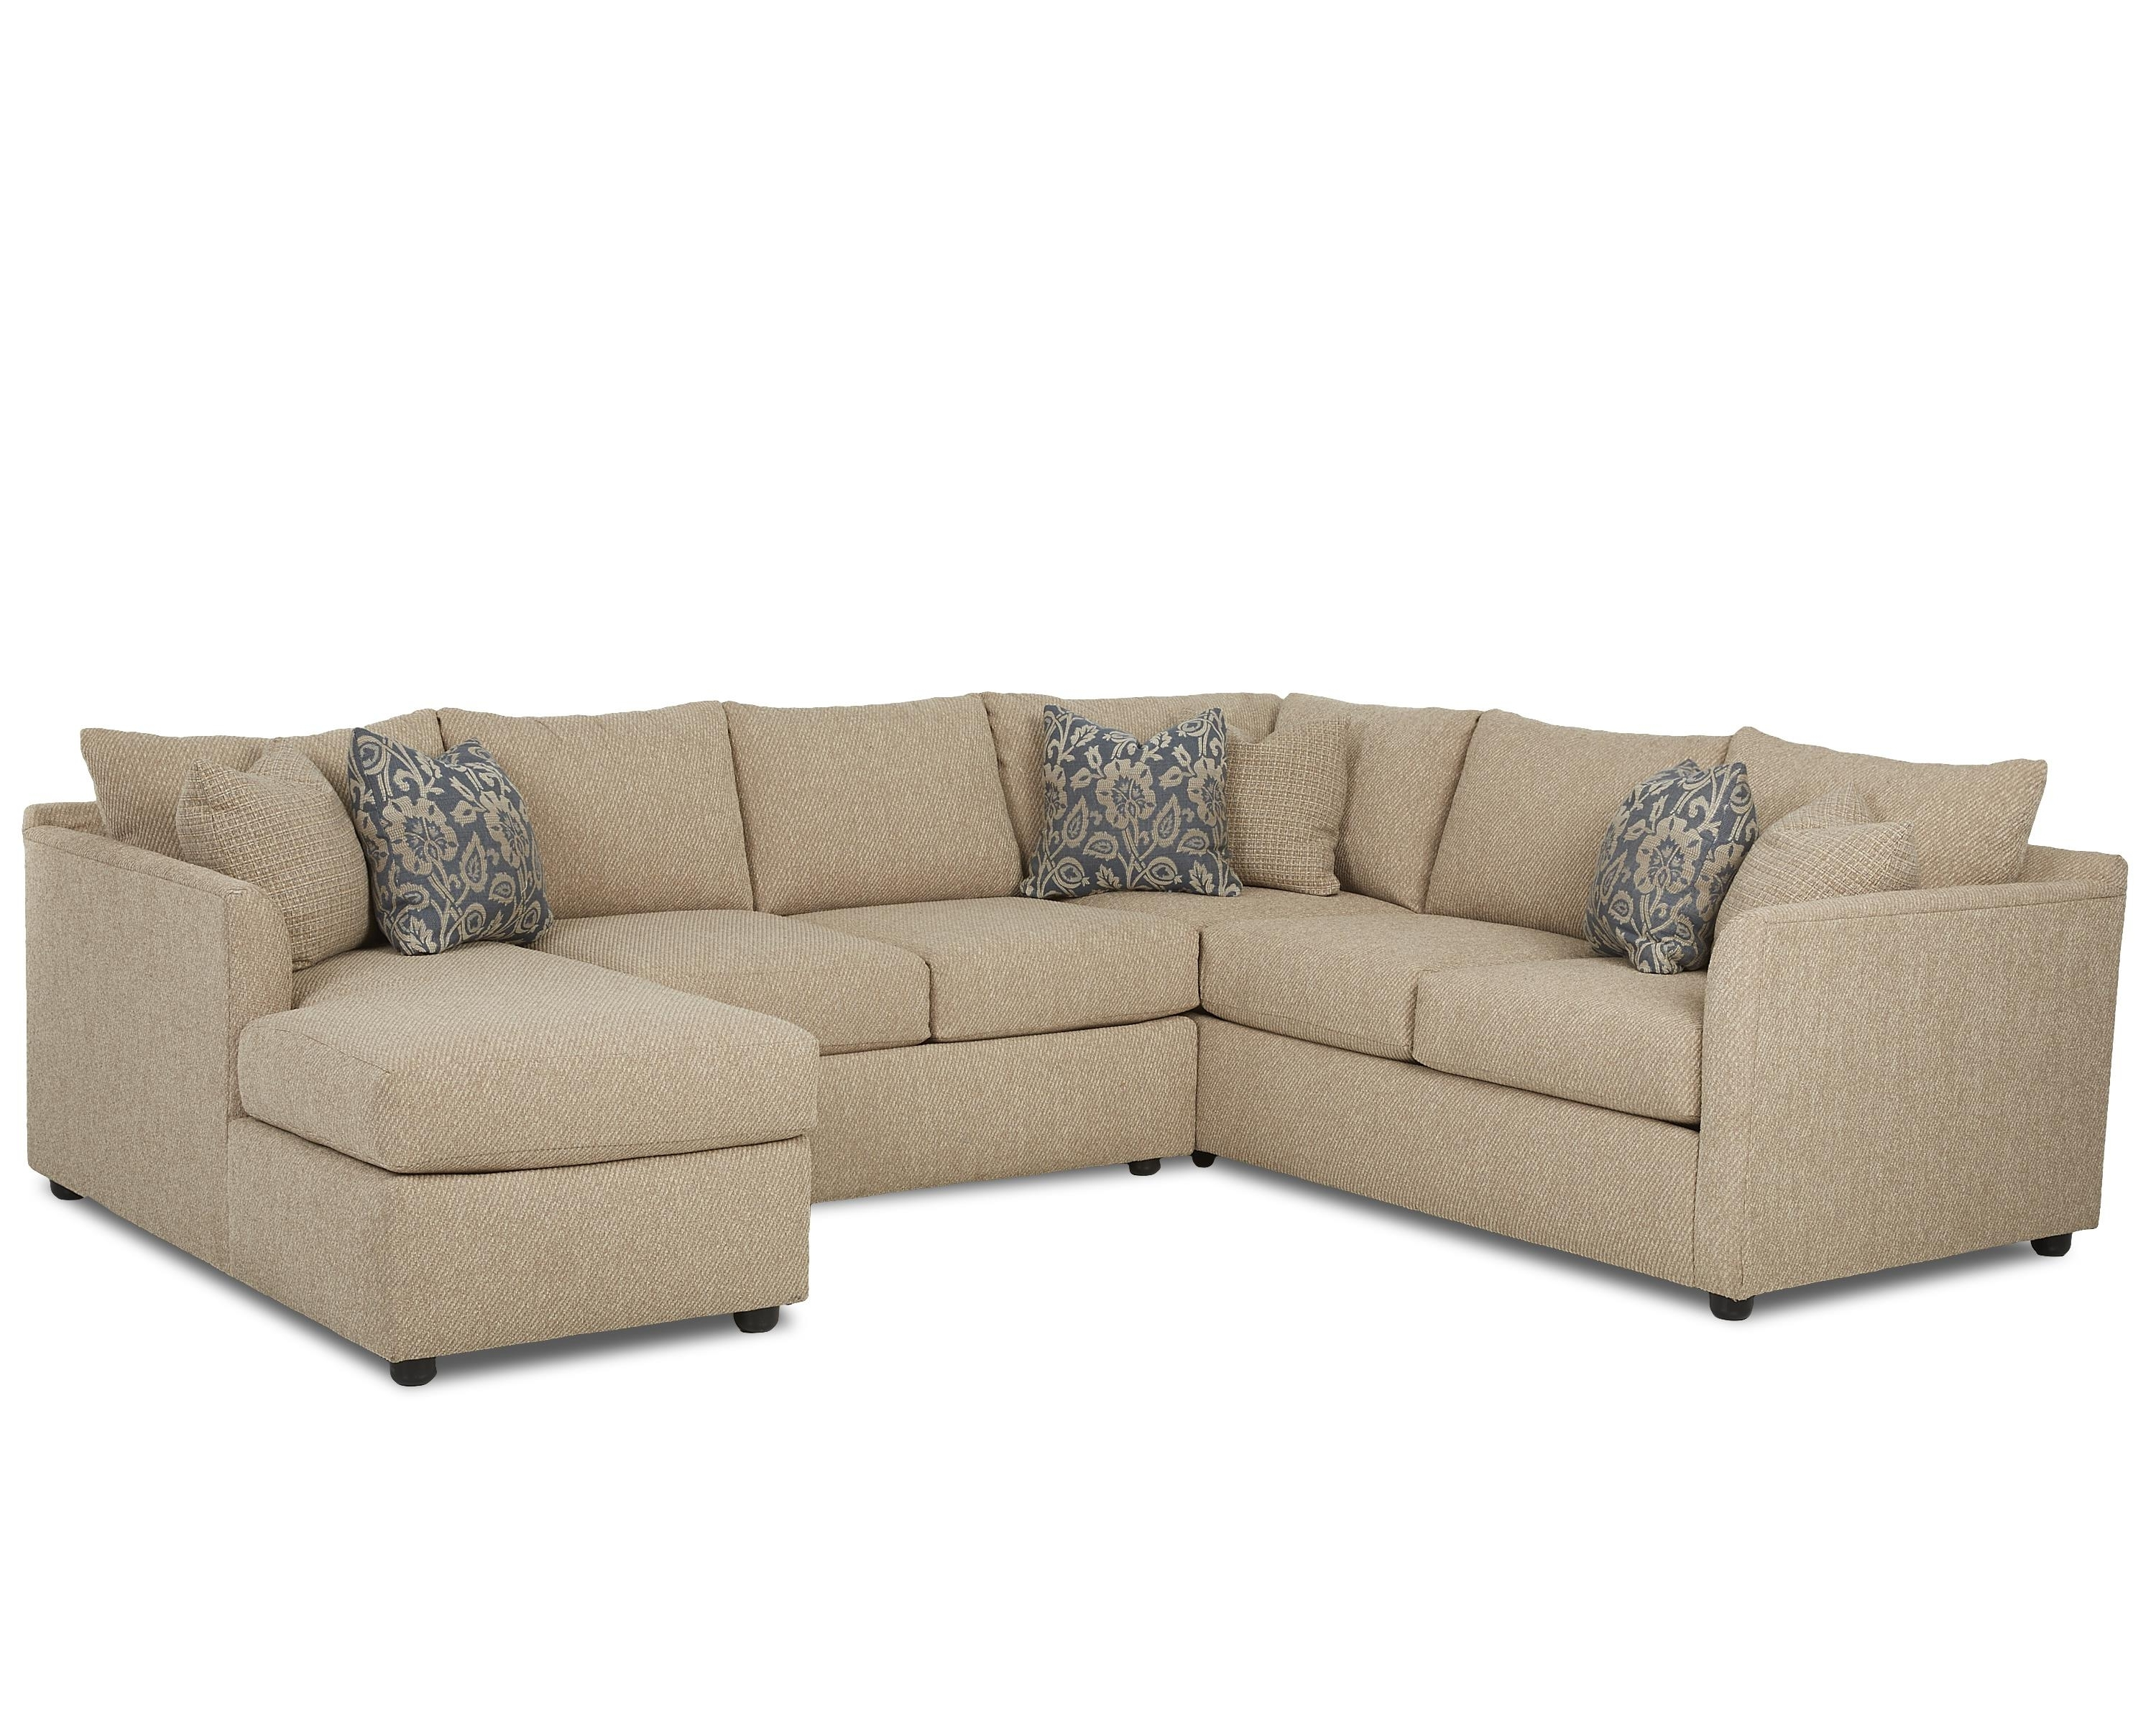 Preferred Furniture: Gorgeous King Hickory Sectional For Living Room Within Hickory Nc Sectional Sofas (View 19 of 20)